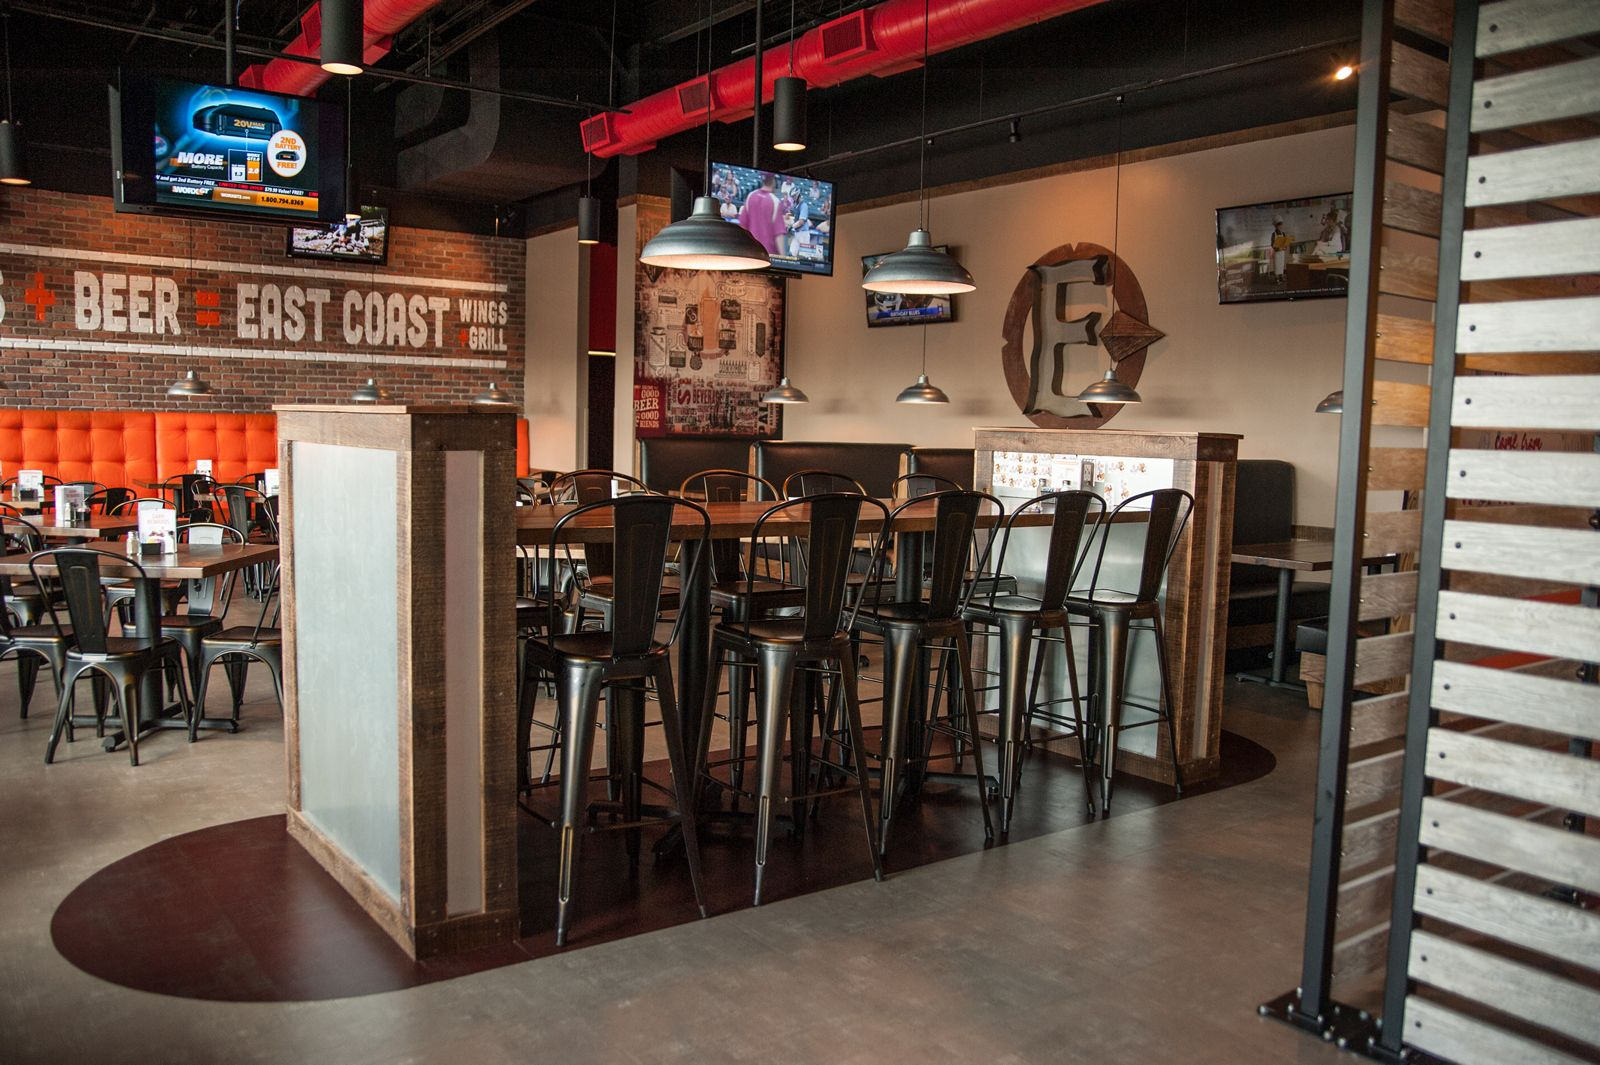 East Coast Wings + Grill Sees Big Returns on Brand Initiatives